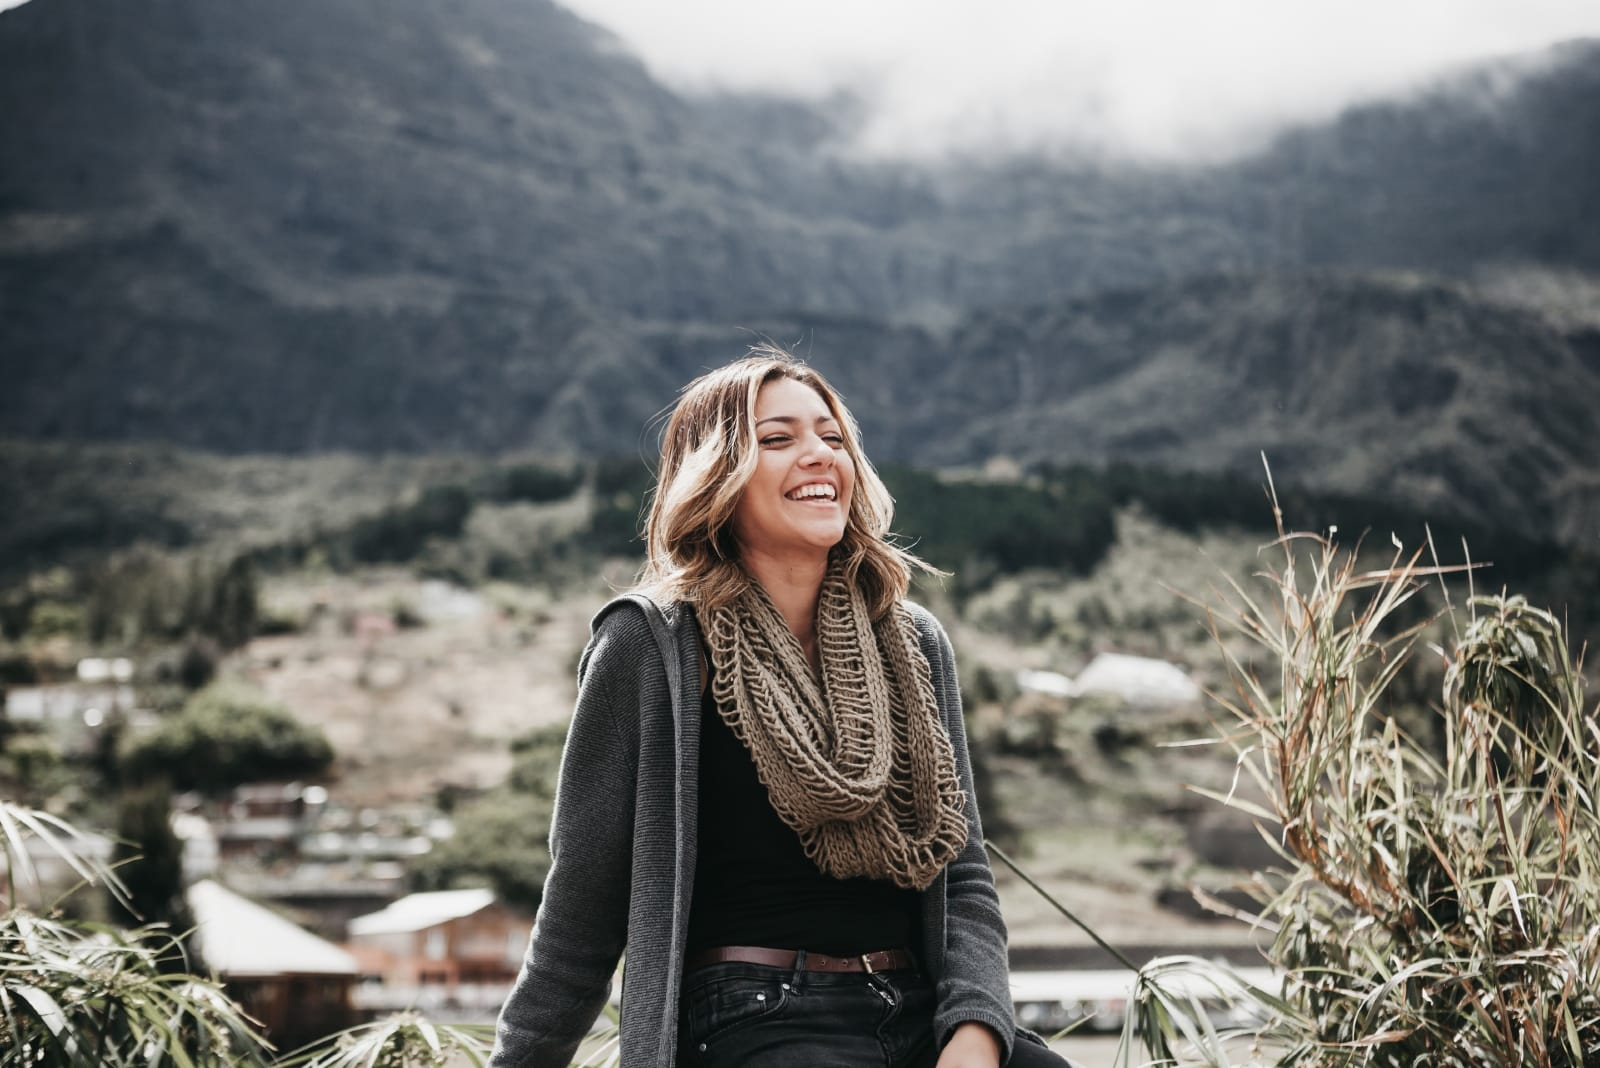 woman with gray scarf sitting outdoor smiling